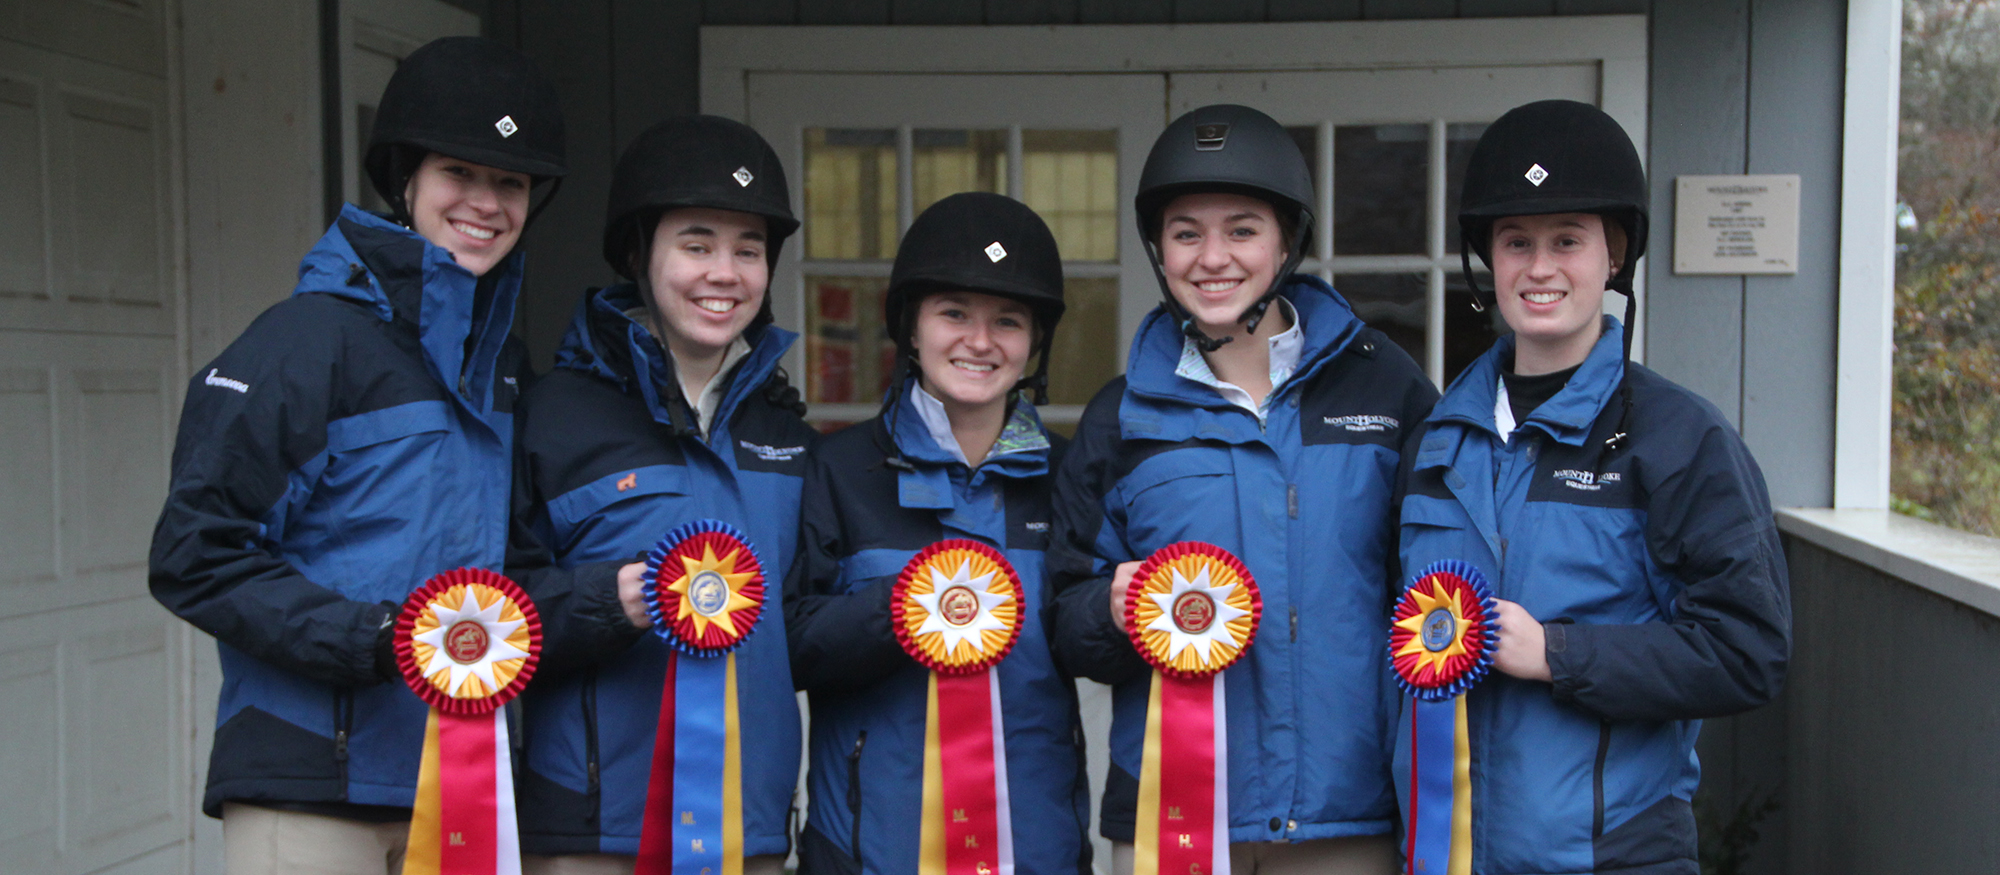 Photo featuring Riding award winners from November 18th's home riding show. Left to right are Franny Eremeeva, Taryn Isenburg, Emma Recchi, Cat Lamond and Harriet Thomson.